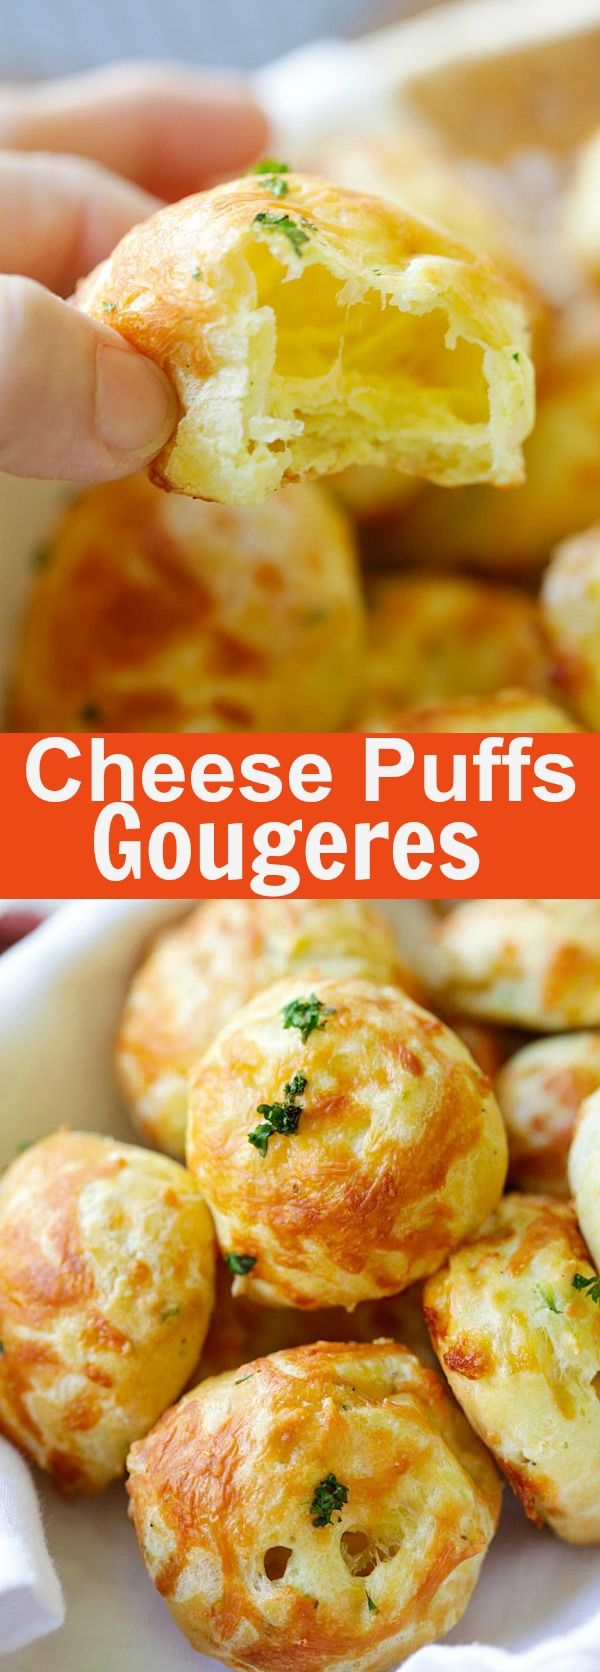 Mozzarella clipart french cheese Gougères cheese about ideas French